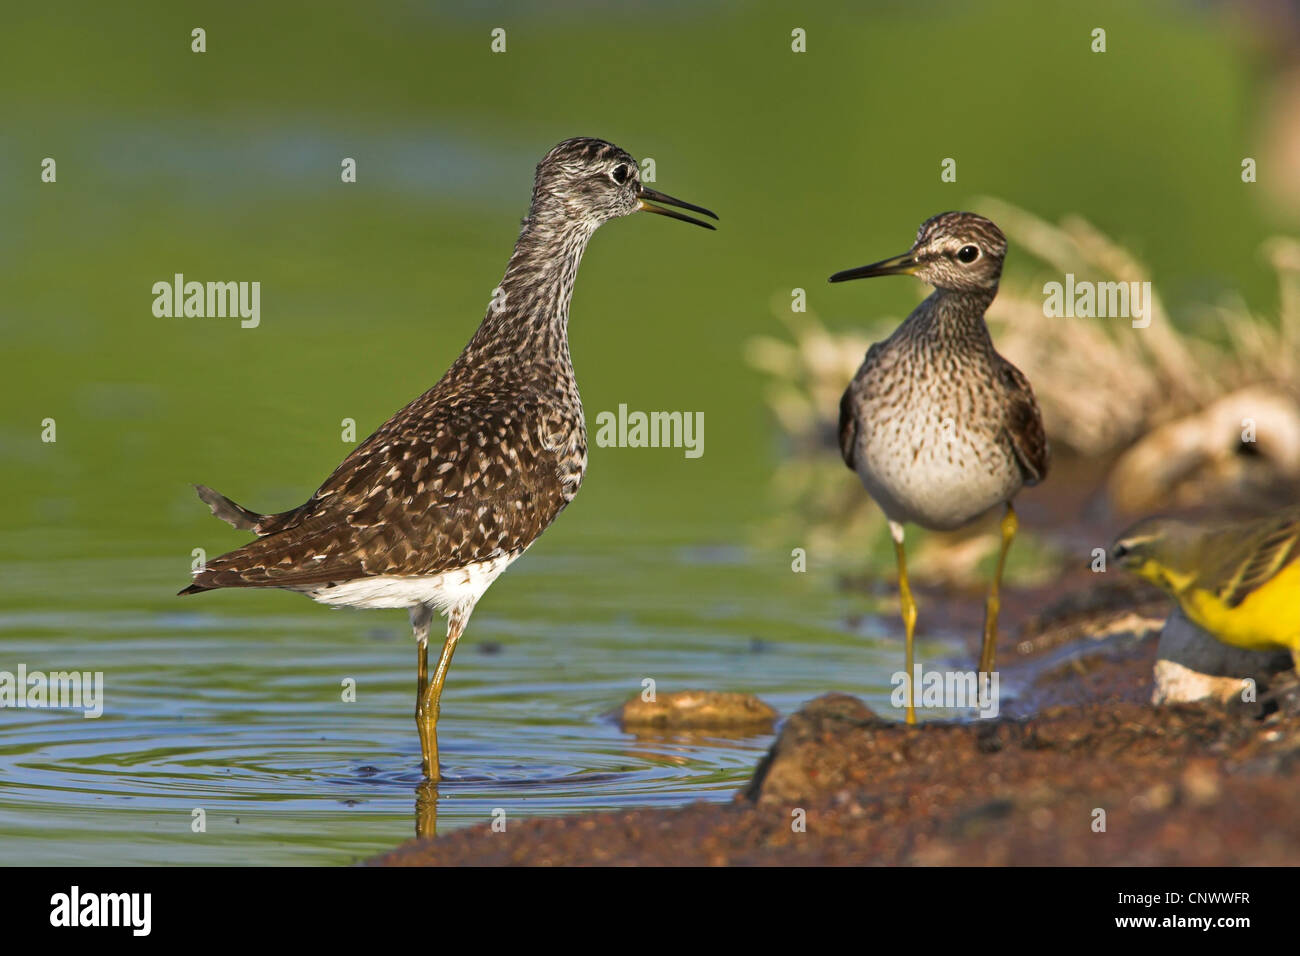 wood sandpiper (Tringa glareola), two birds standing at the edge of a quiet water, Greece, Lesbos - Stock Image